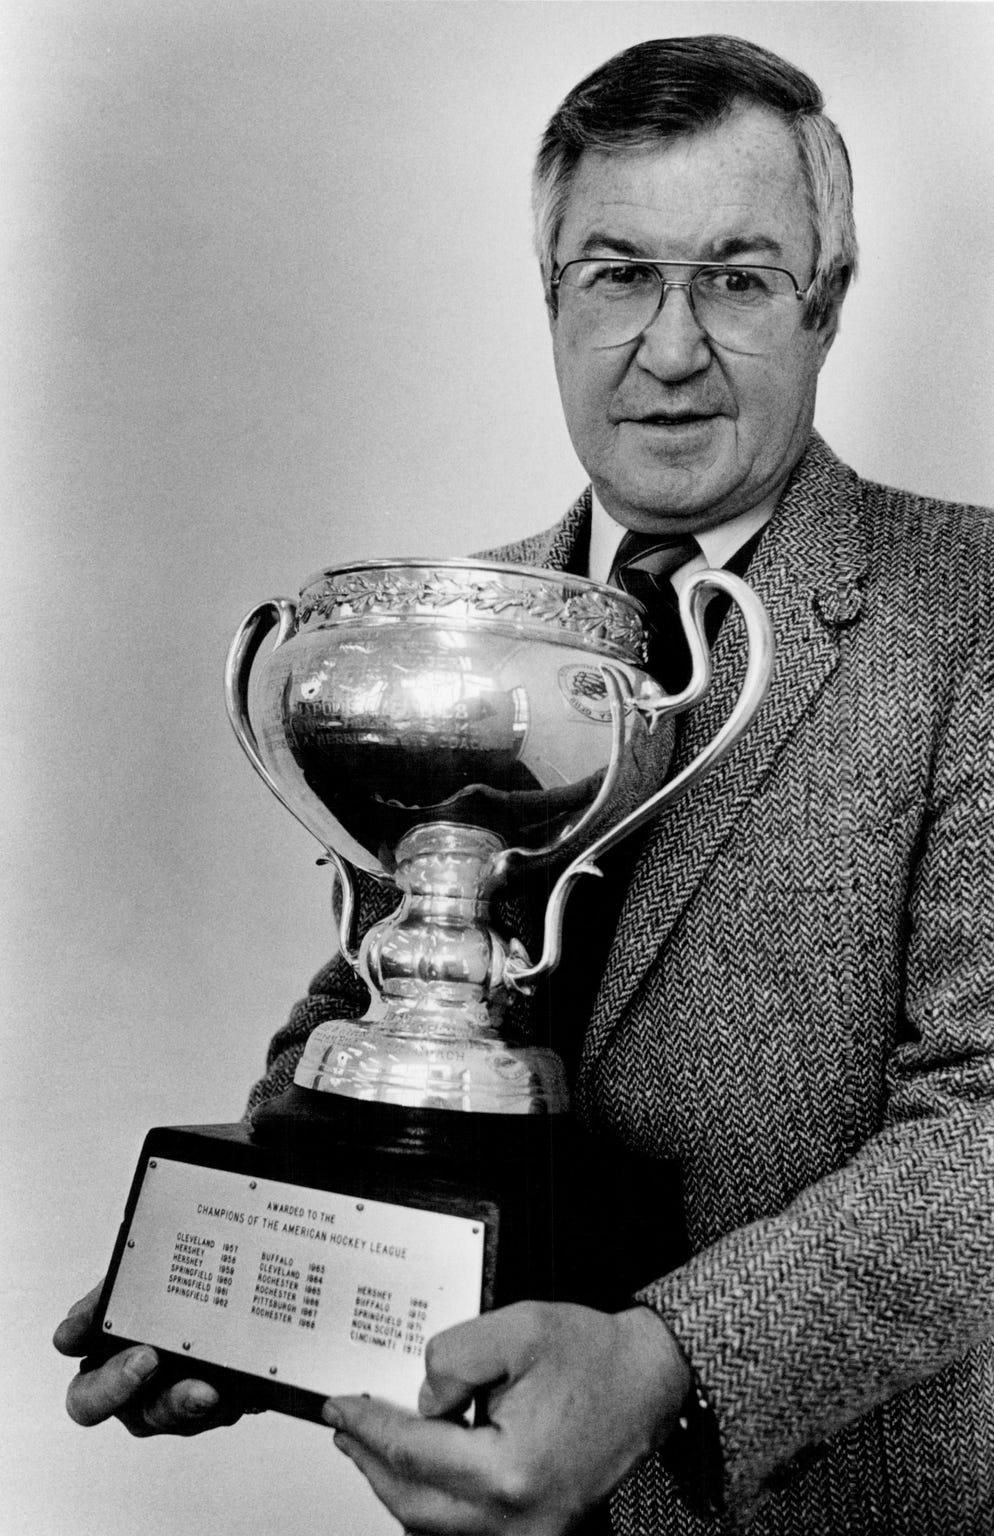 Joe Crozier holds the Calder Cup after returning to coach the Rochester Americans in October 1983. Crozier coached the Amerks to three Calder Cup titles in the 1960s.